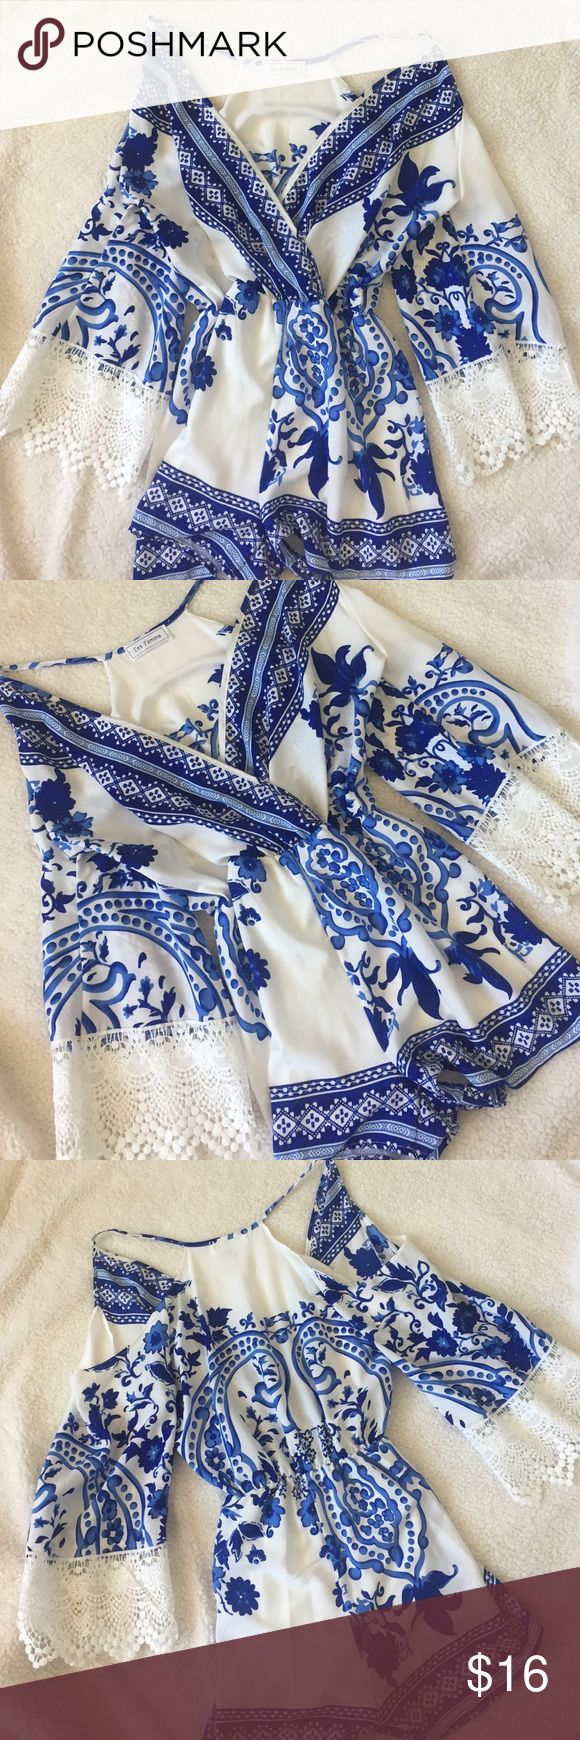 Beautiful blue and white romper This gorgeous blue and white romper will have all of your friends in envy. From the delicate detail of the lace on the sleeves, to the royal blue floral designs, this romper is the definition of gorgeous! Ces Femme Other